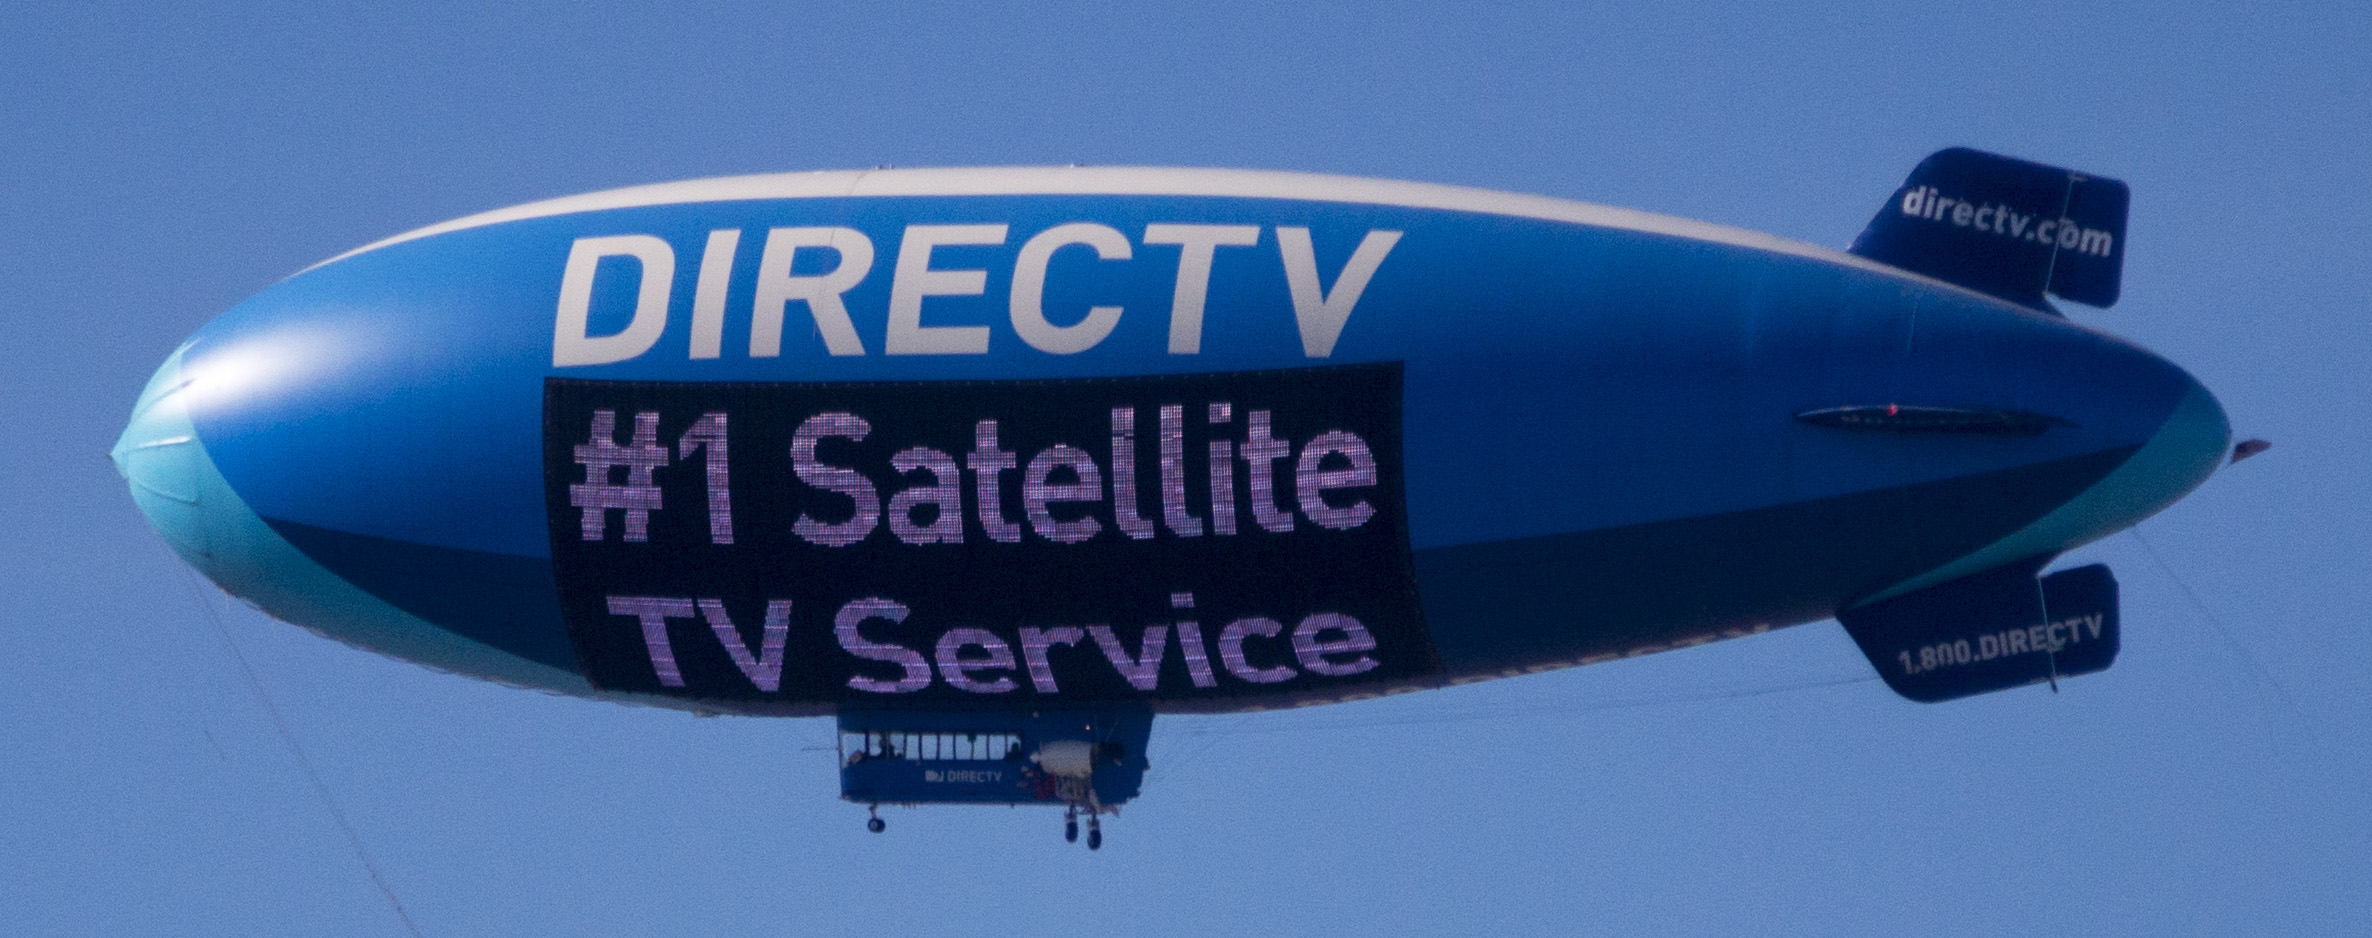 DirecTV Blimp flying over West Las Vegas during the Consumer Electronics Show 2015.